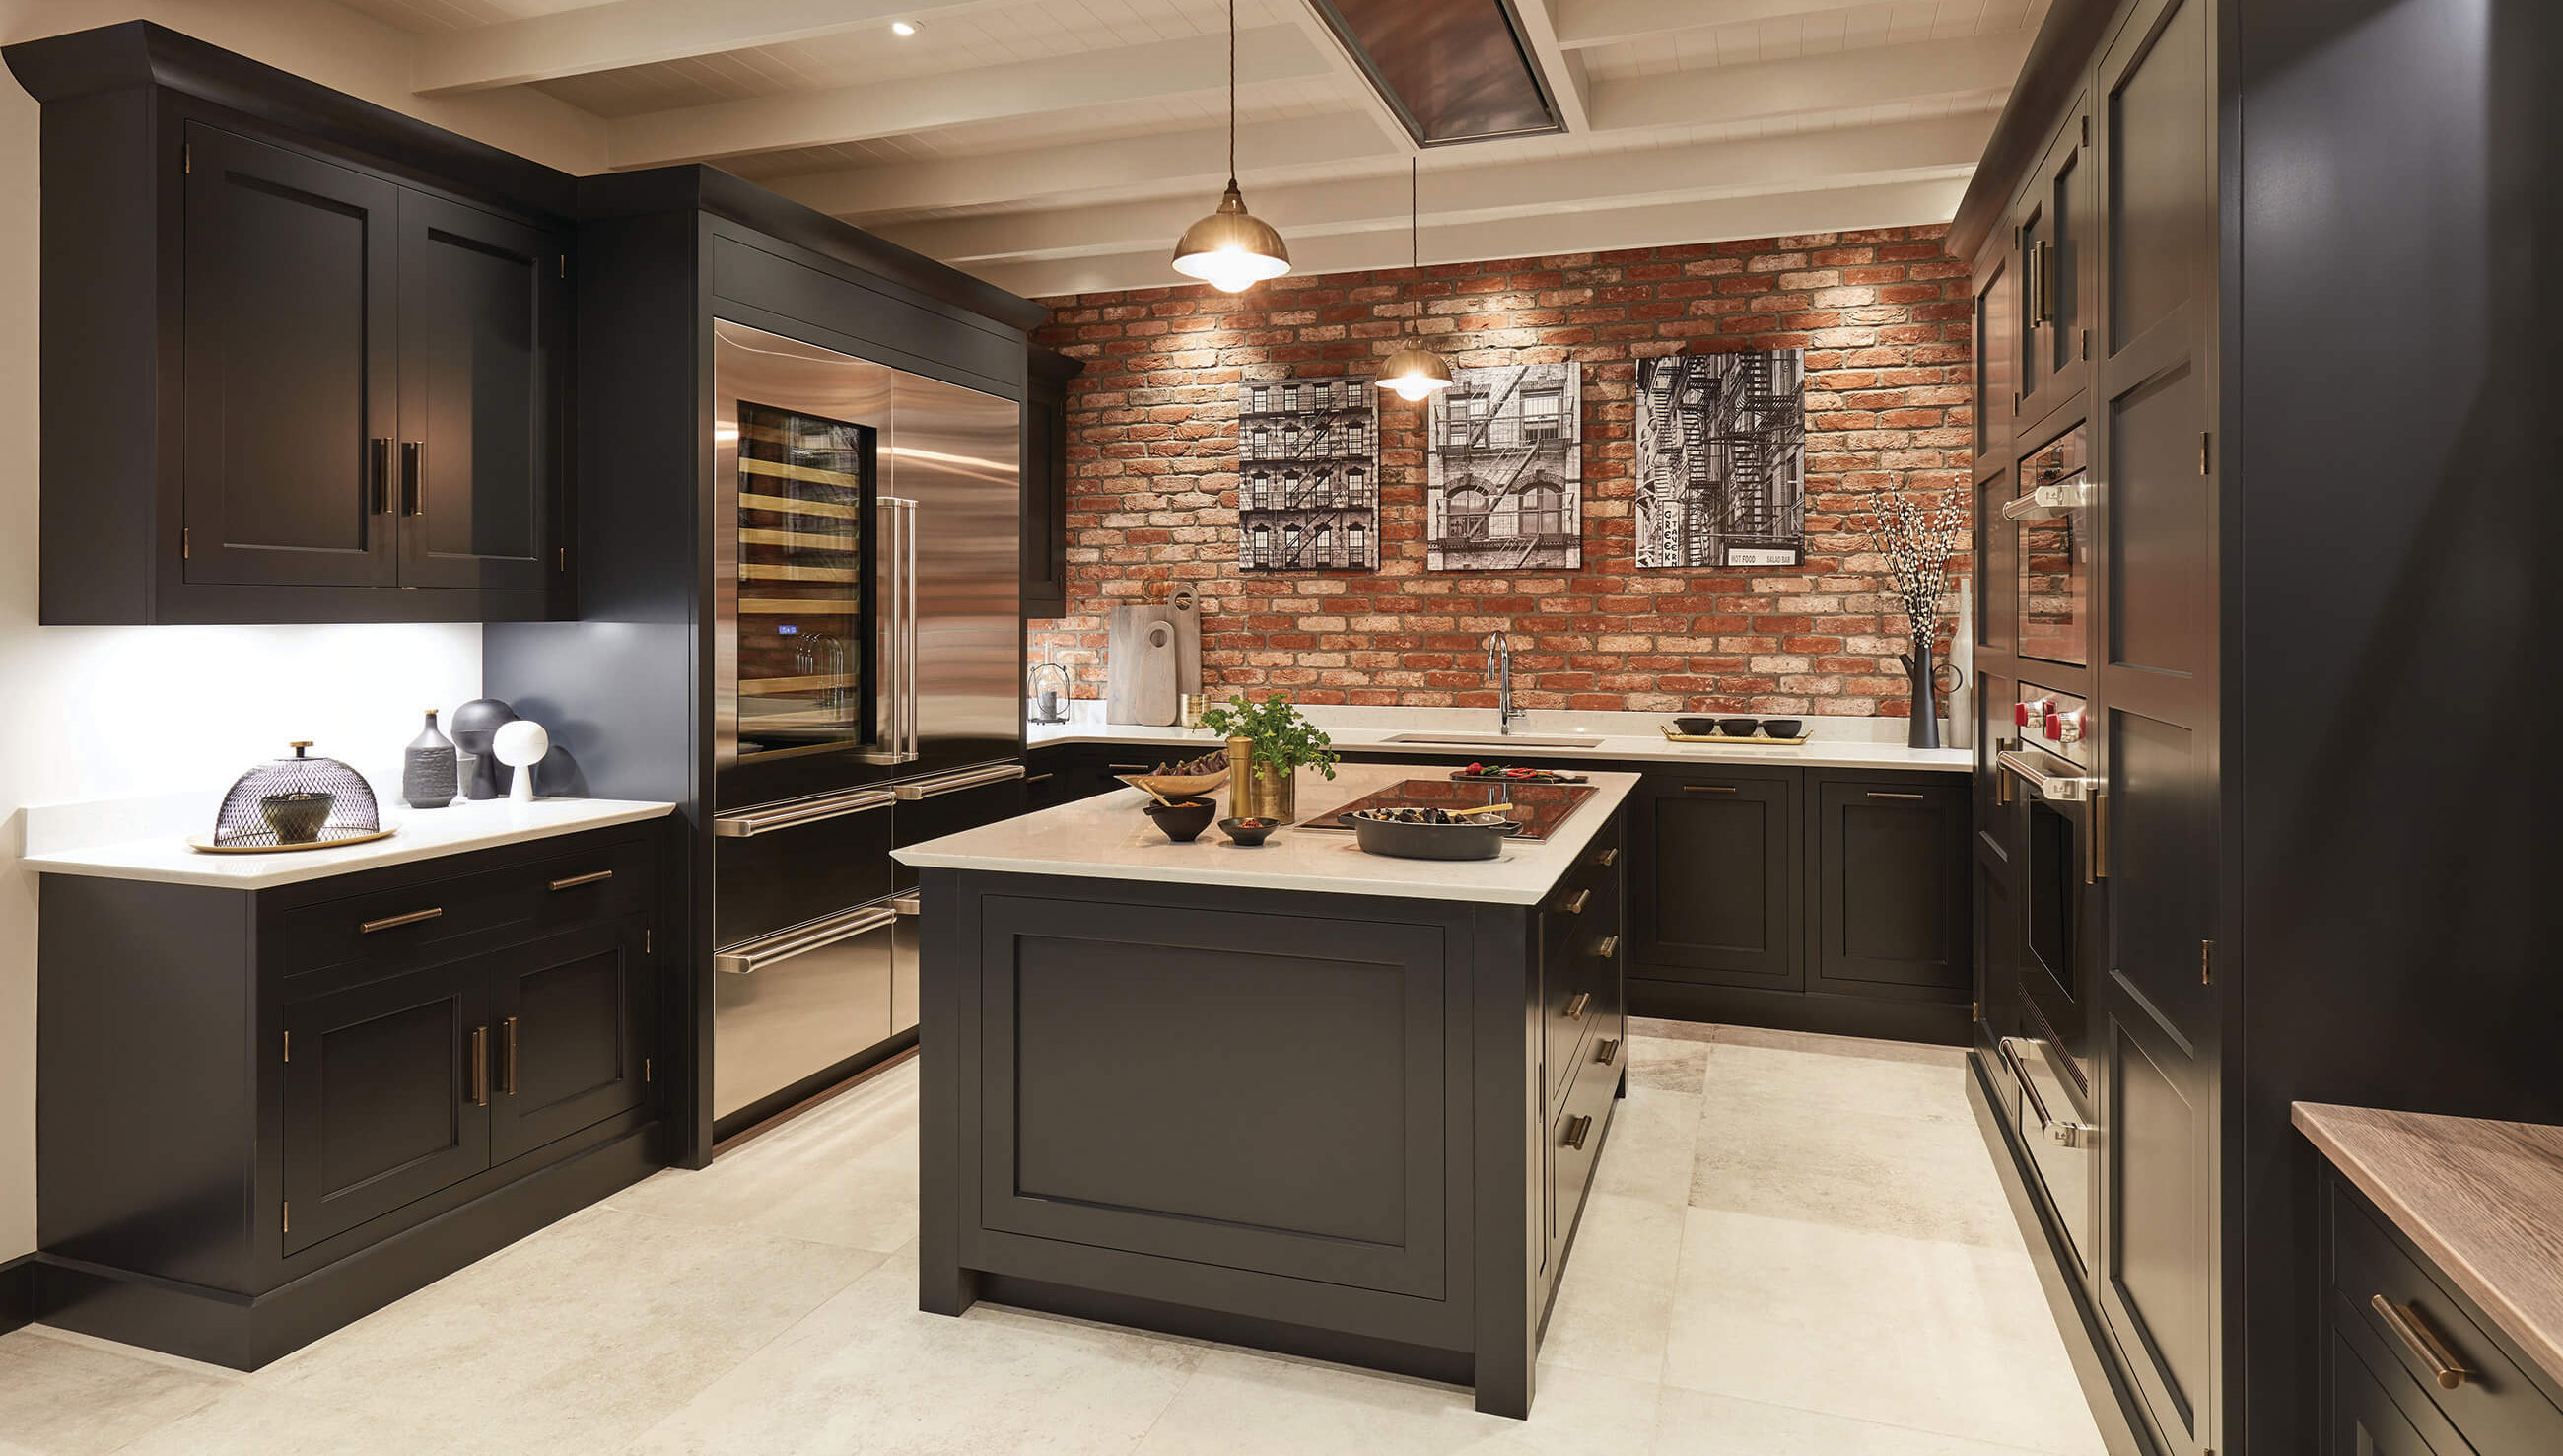 Bespoke Kitchens Luxury Kitchen Designers Tom Howley